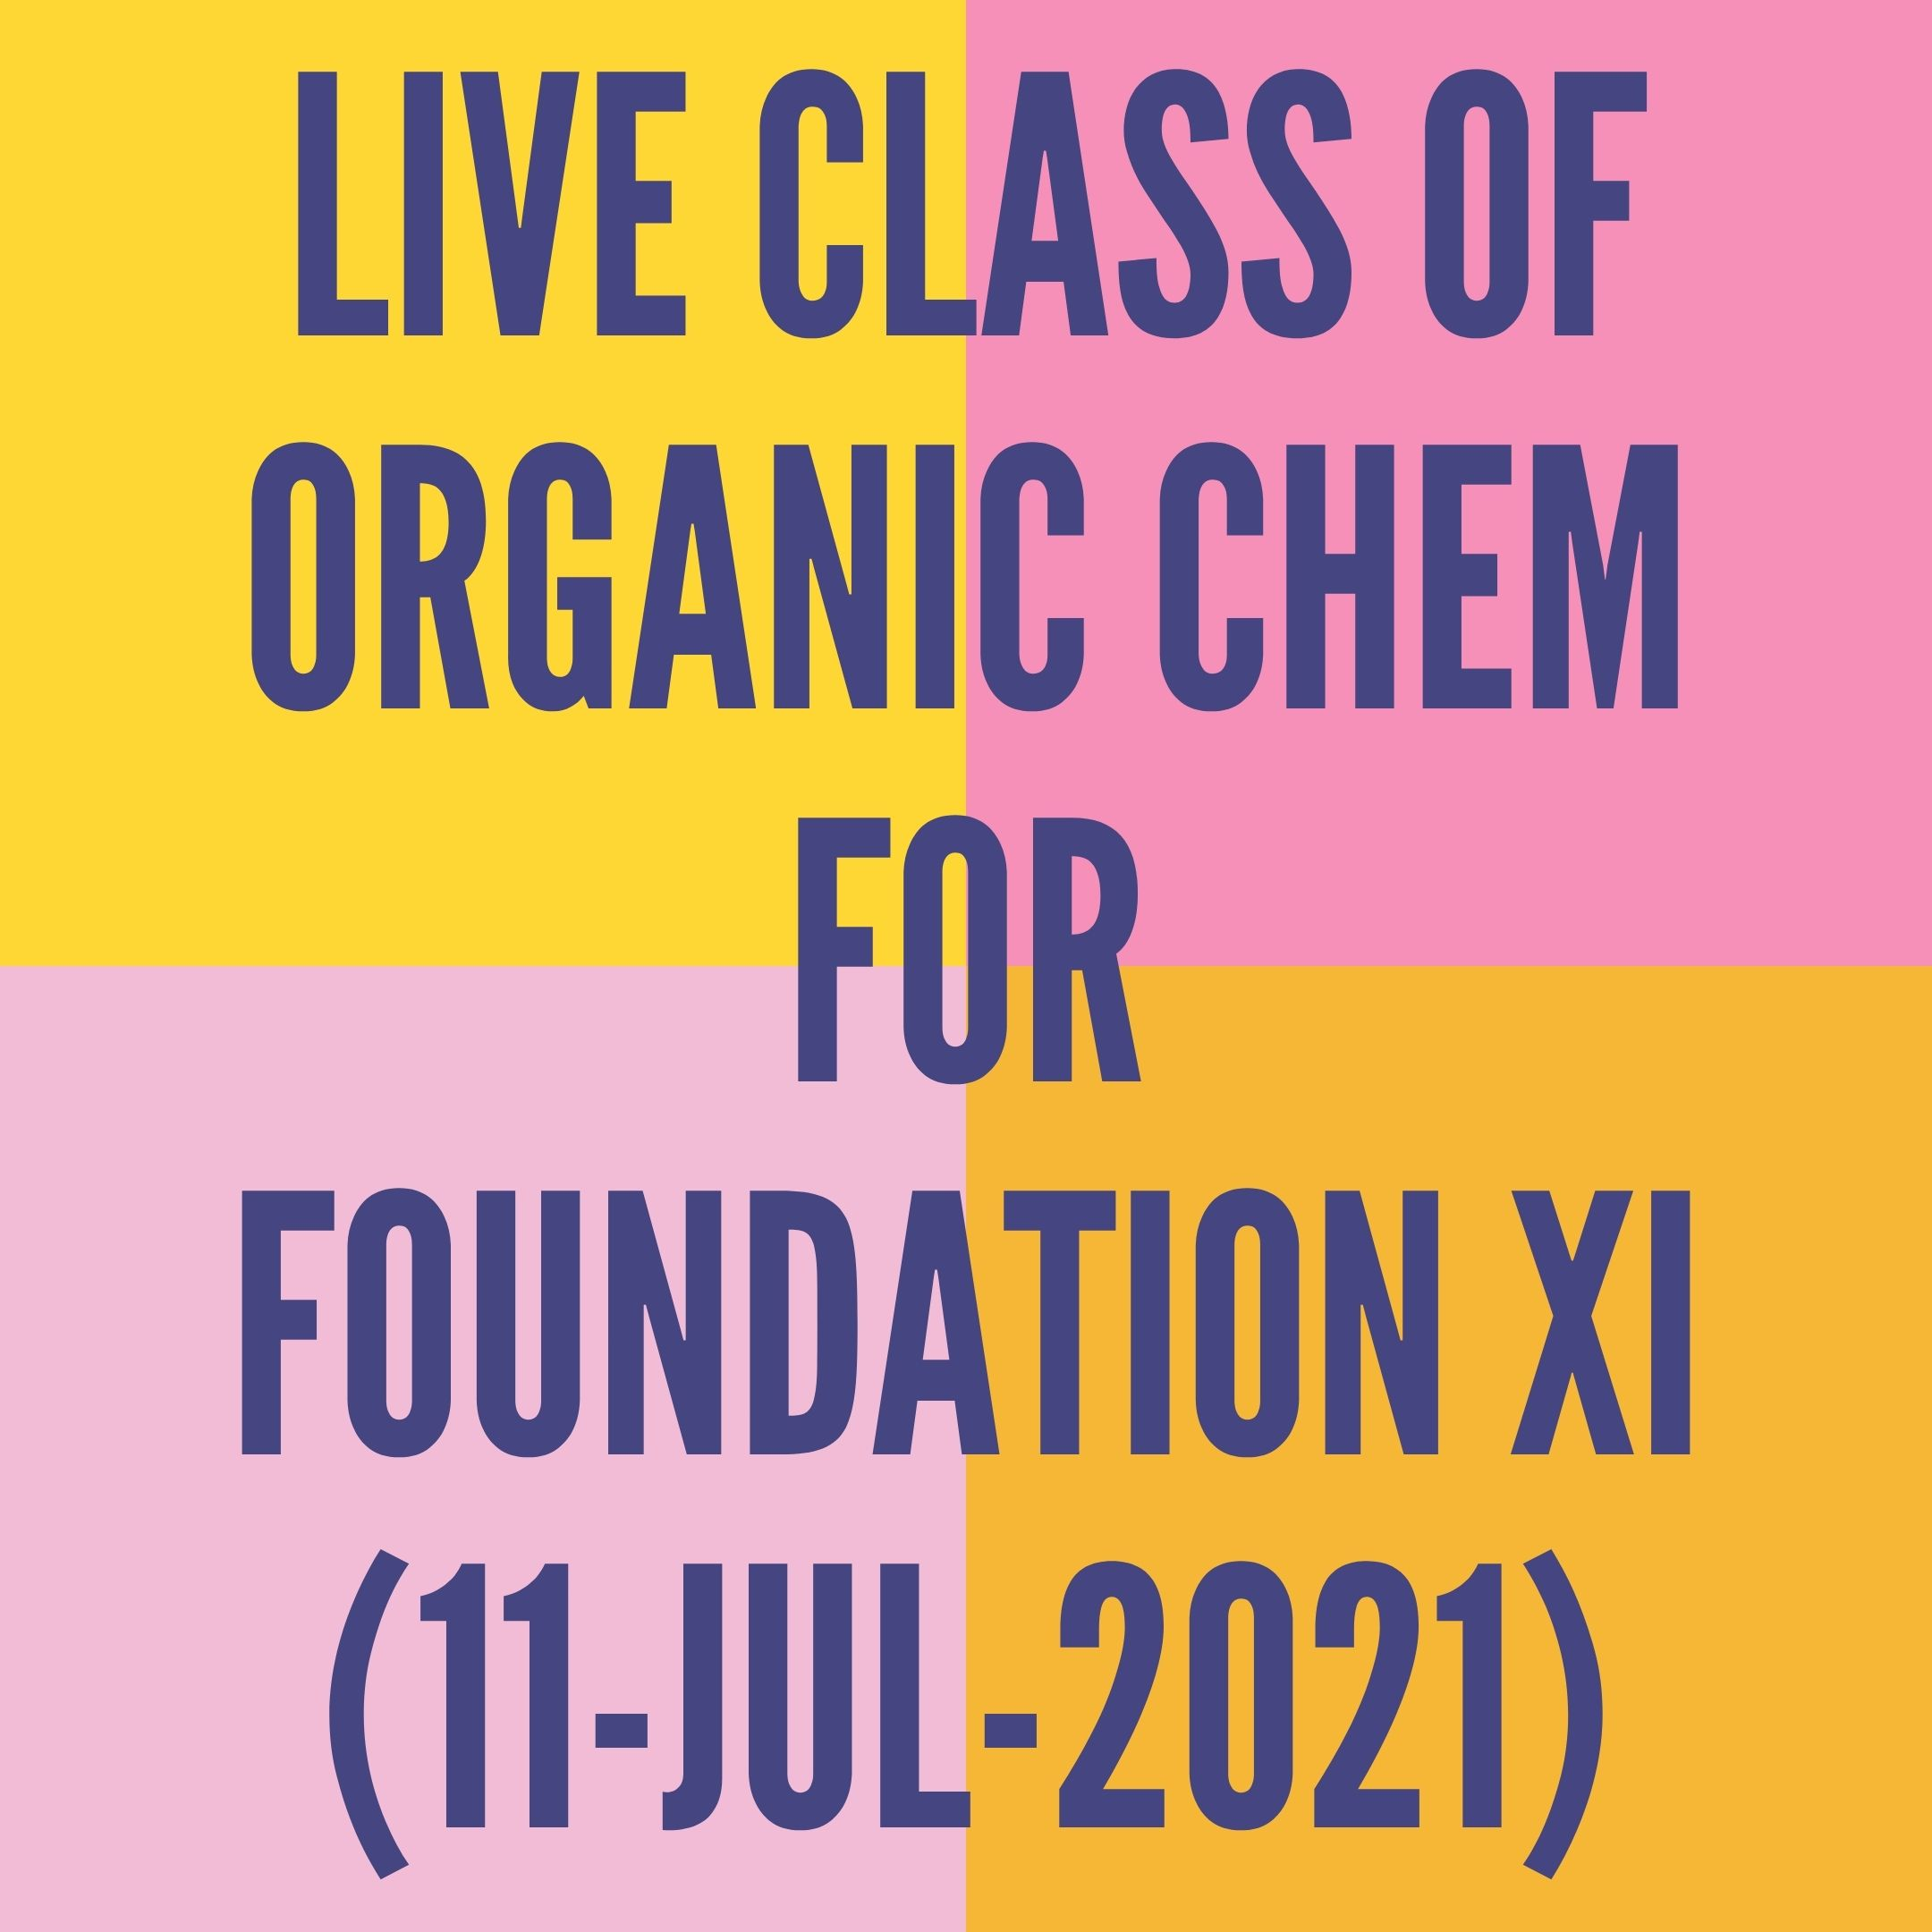 LIVE CLASS OF ORGANIC CHEMISTRY FOR FOUNDATION XI (11-JUL-2021) NOMENCLATURE